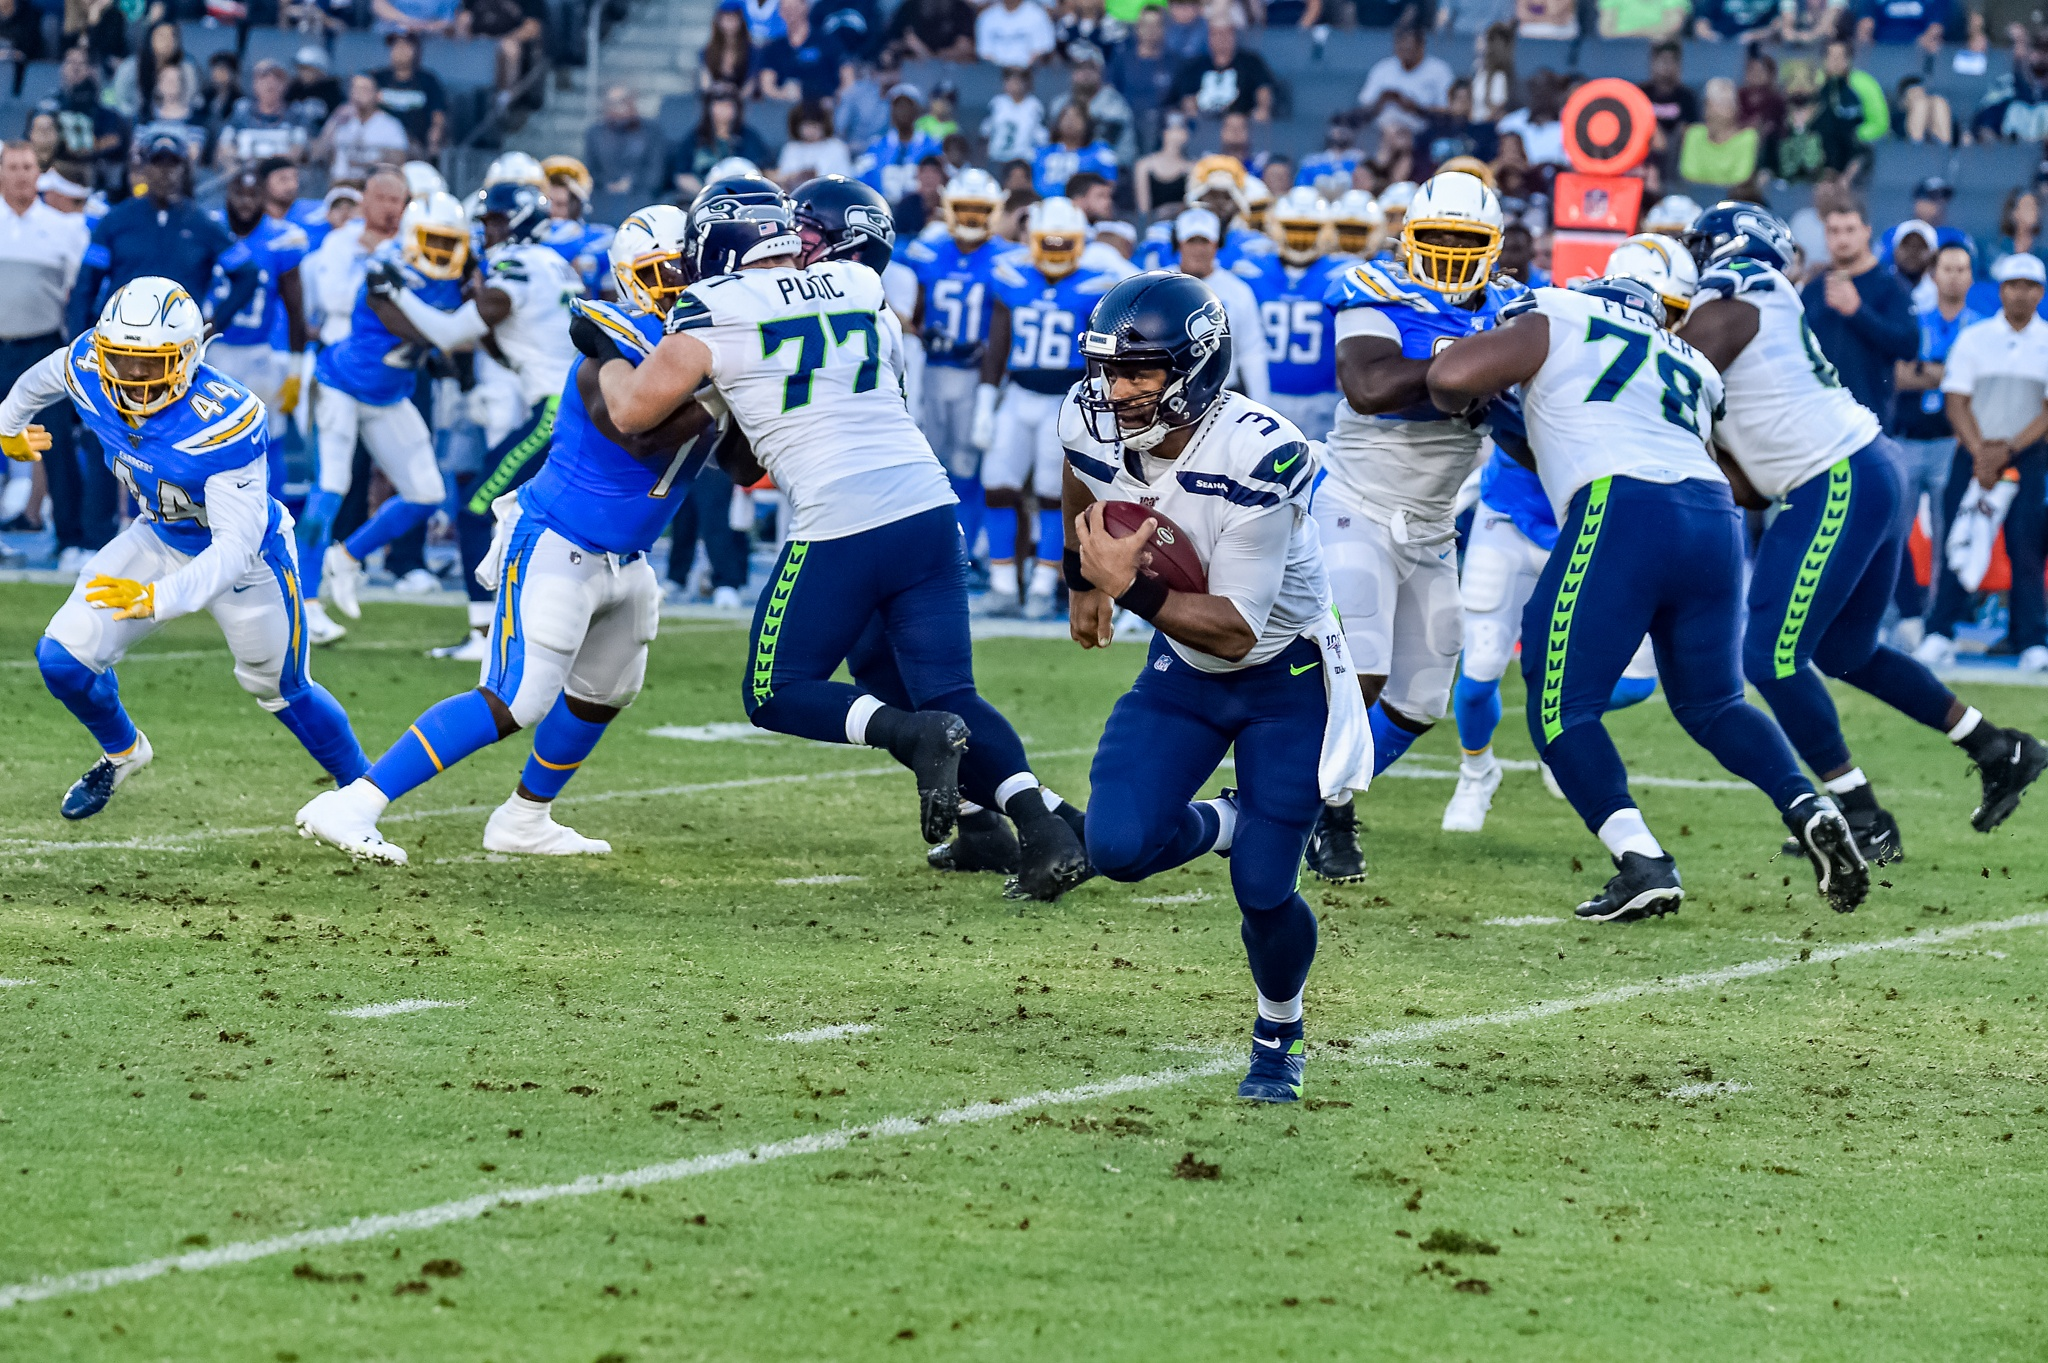 © Mark Hammond/News4usonline - Aug. 24, 2019 - Seahawks vs. Chargers - Seattle Seahawks quarterback Russell Wilson on the run